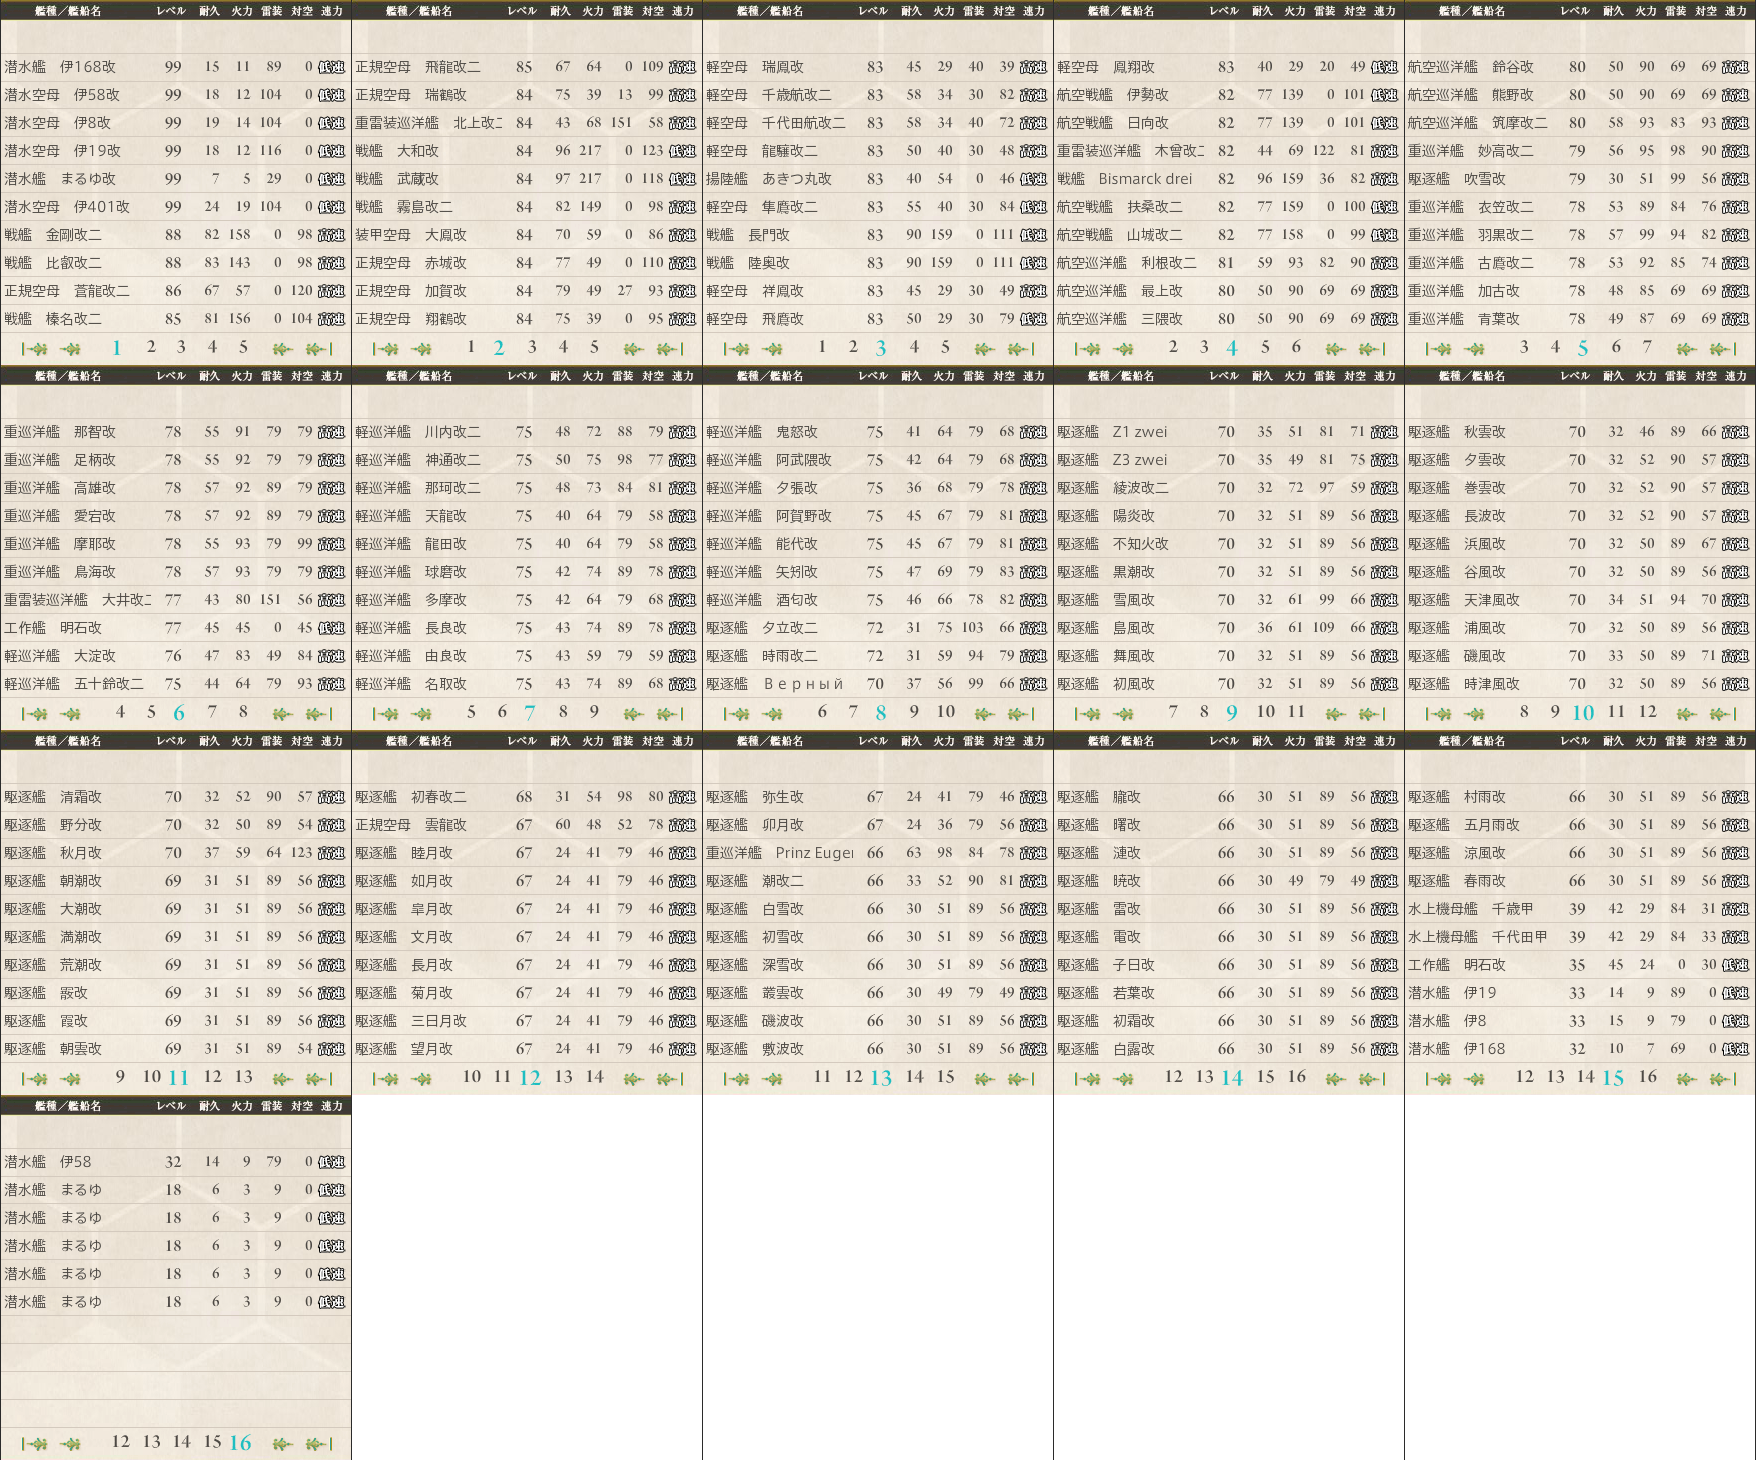 data.kancolle.levelsort.20141221.png